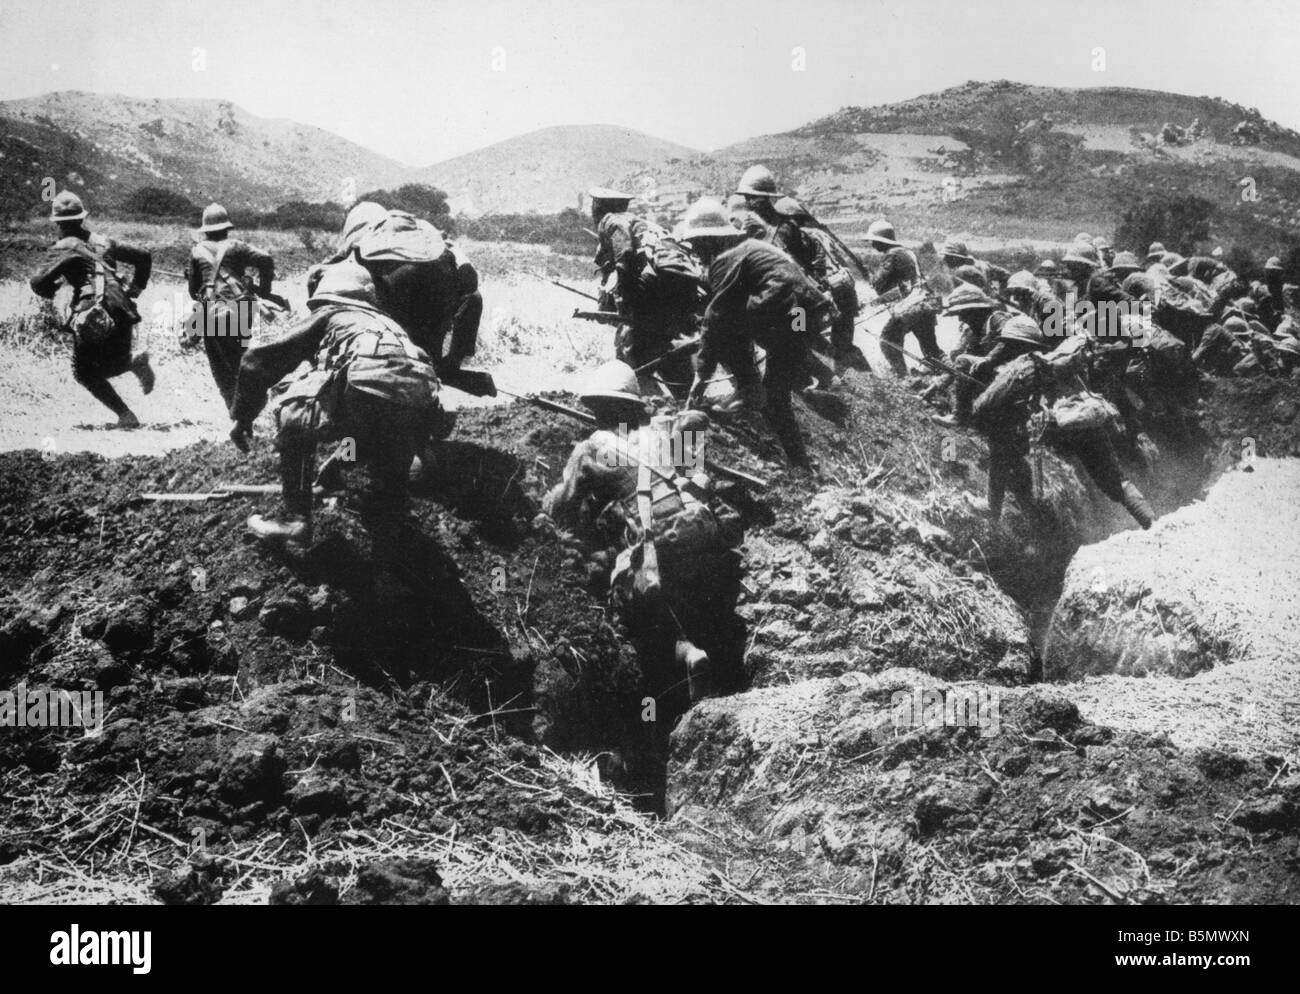 9TK 1915 4 25 A1 1 Battle for Gallipoli 1915 Photo World War One War in the Near East Allied attempt at landing - Stock Image